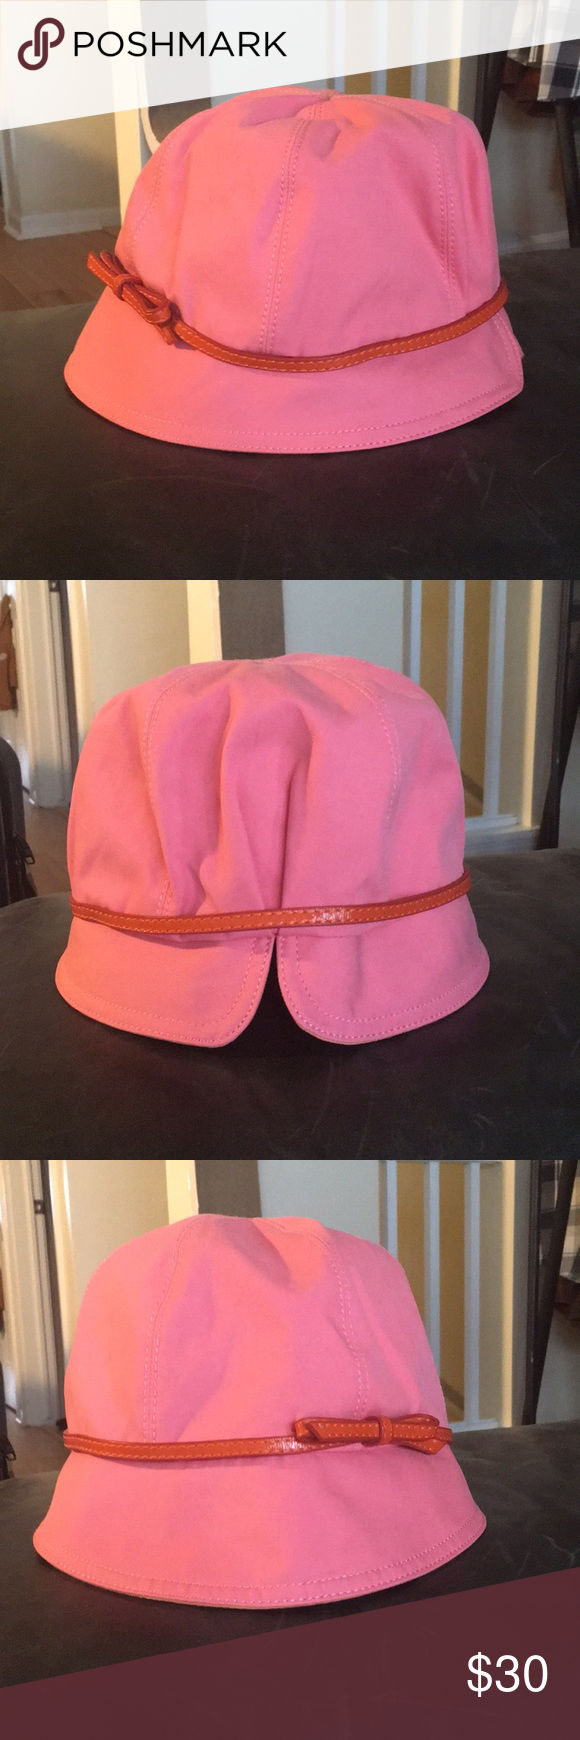 e9595852eac91 Coach Bucket Rain Hat